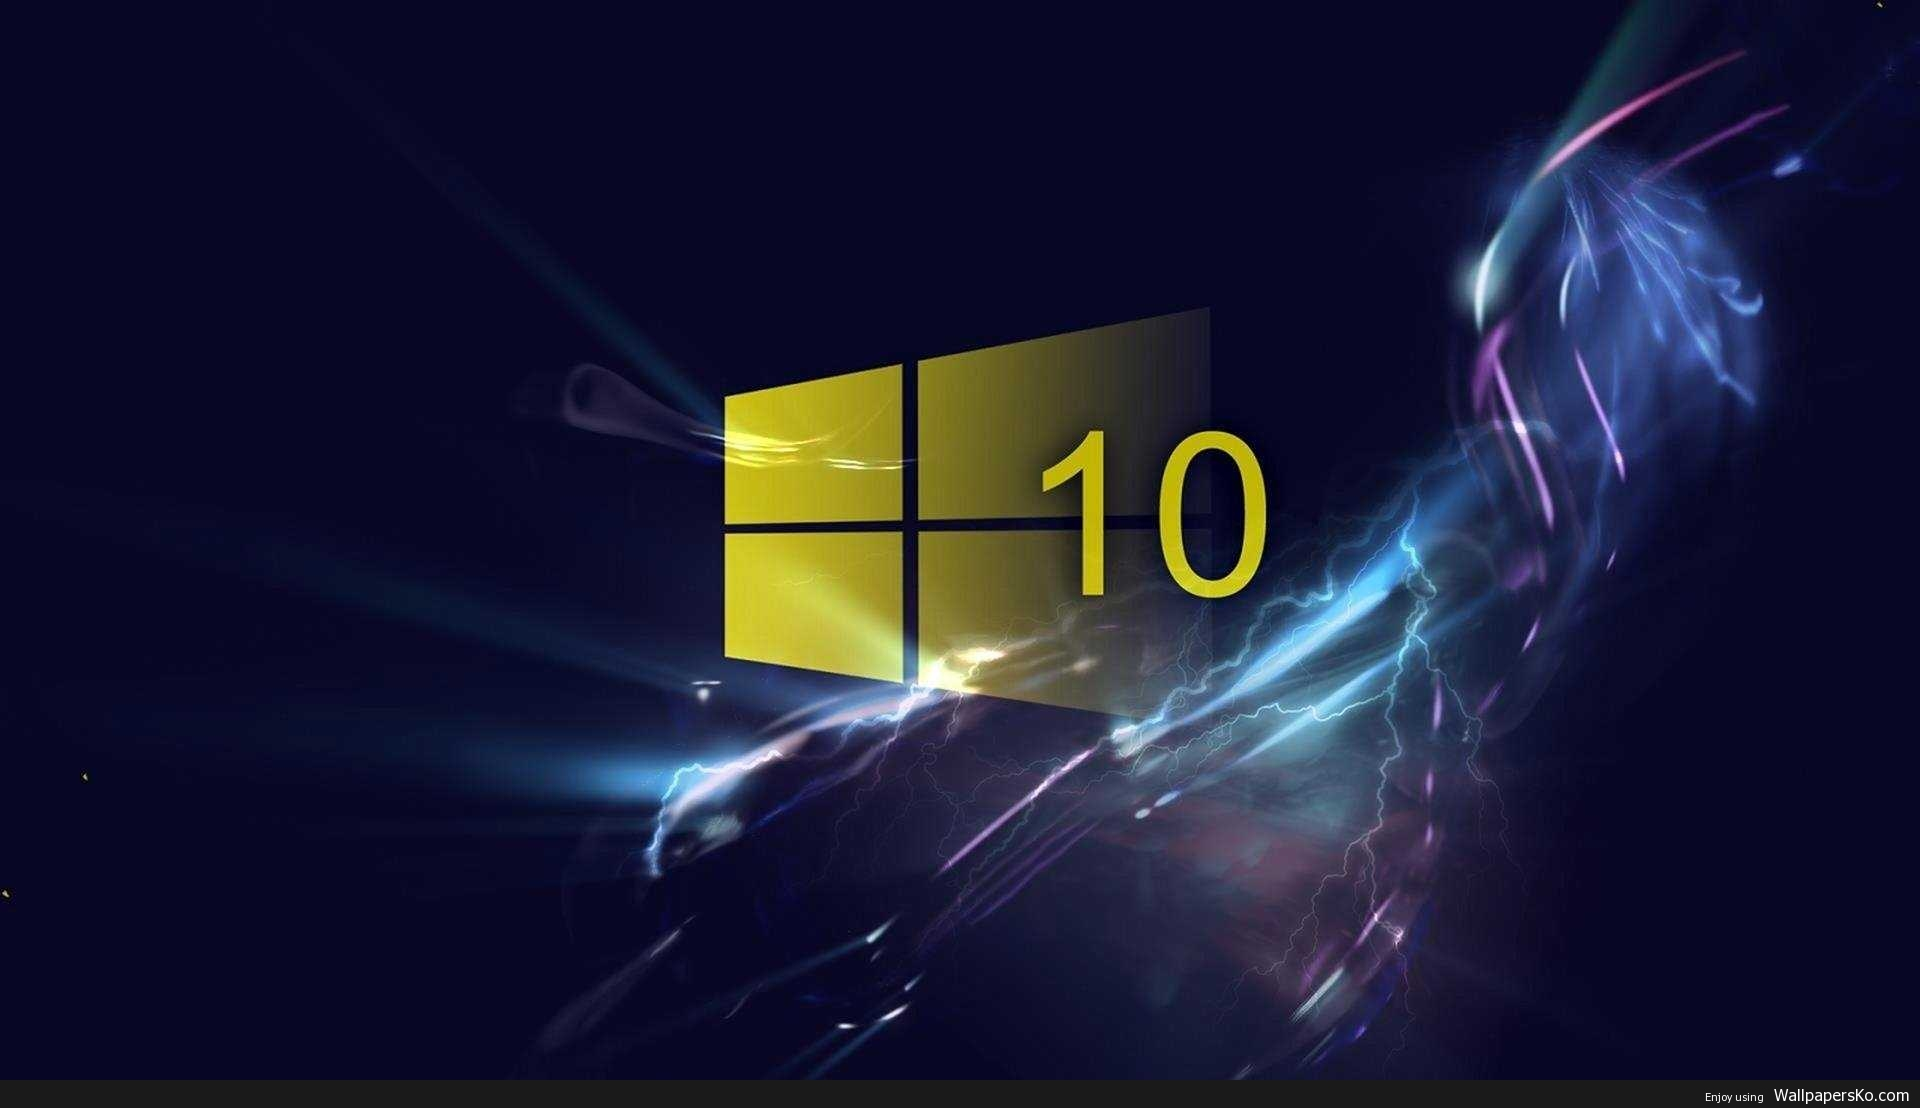 hd wallpaper windows 10